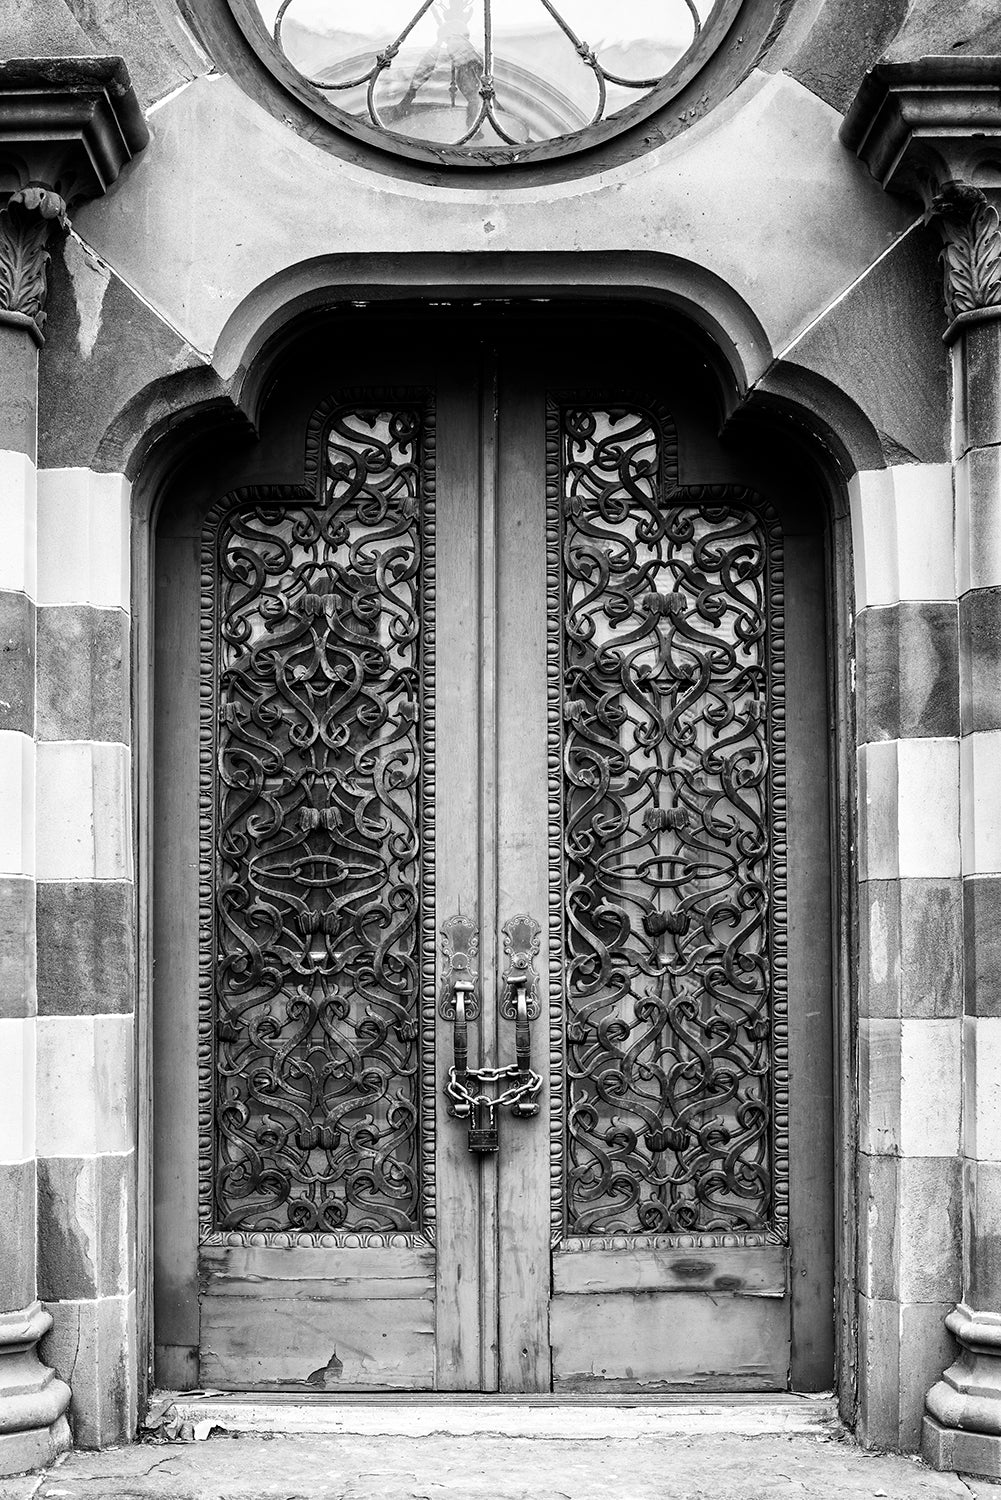 Front Doors of Old Farmers and Exchange Bank in Charleston - Black and White Photograph by Keith Dotson. Buy a fine art print.